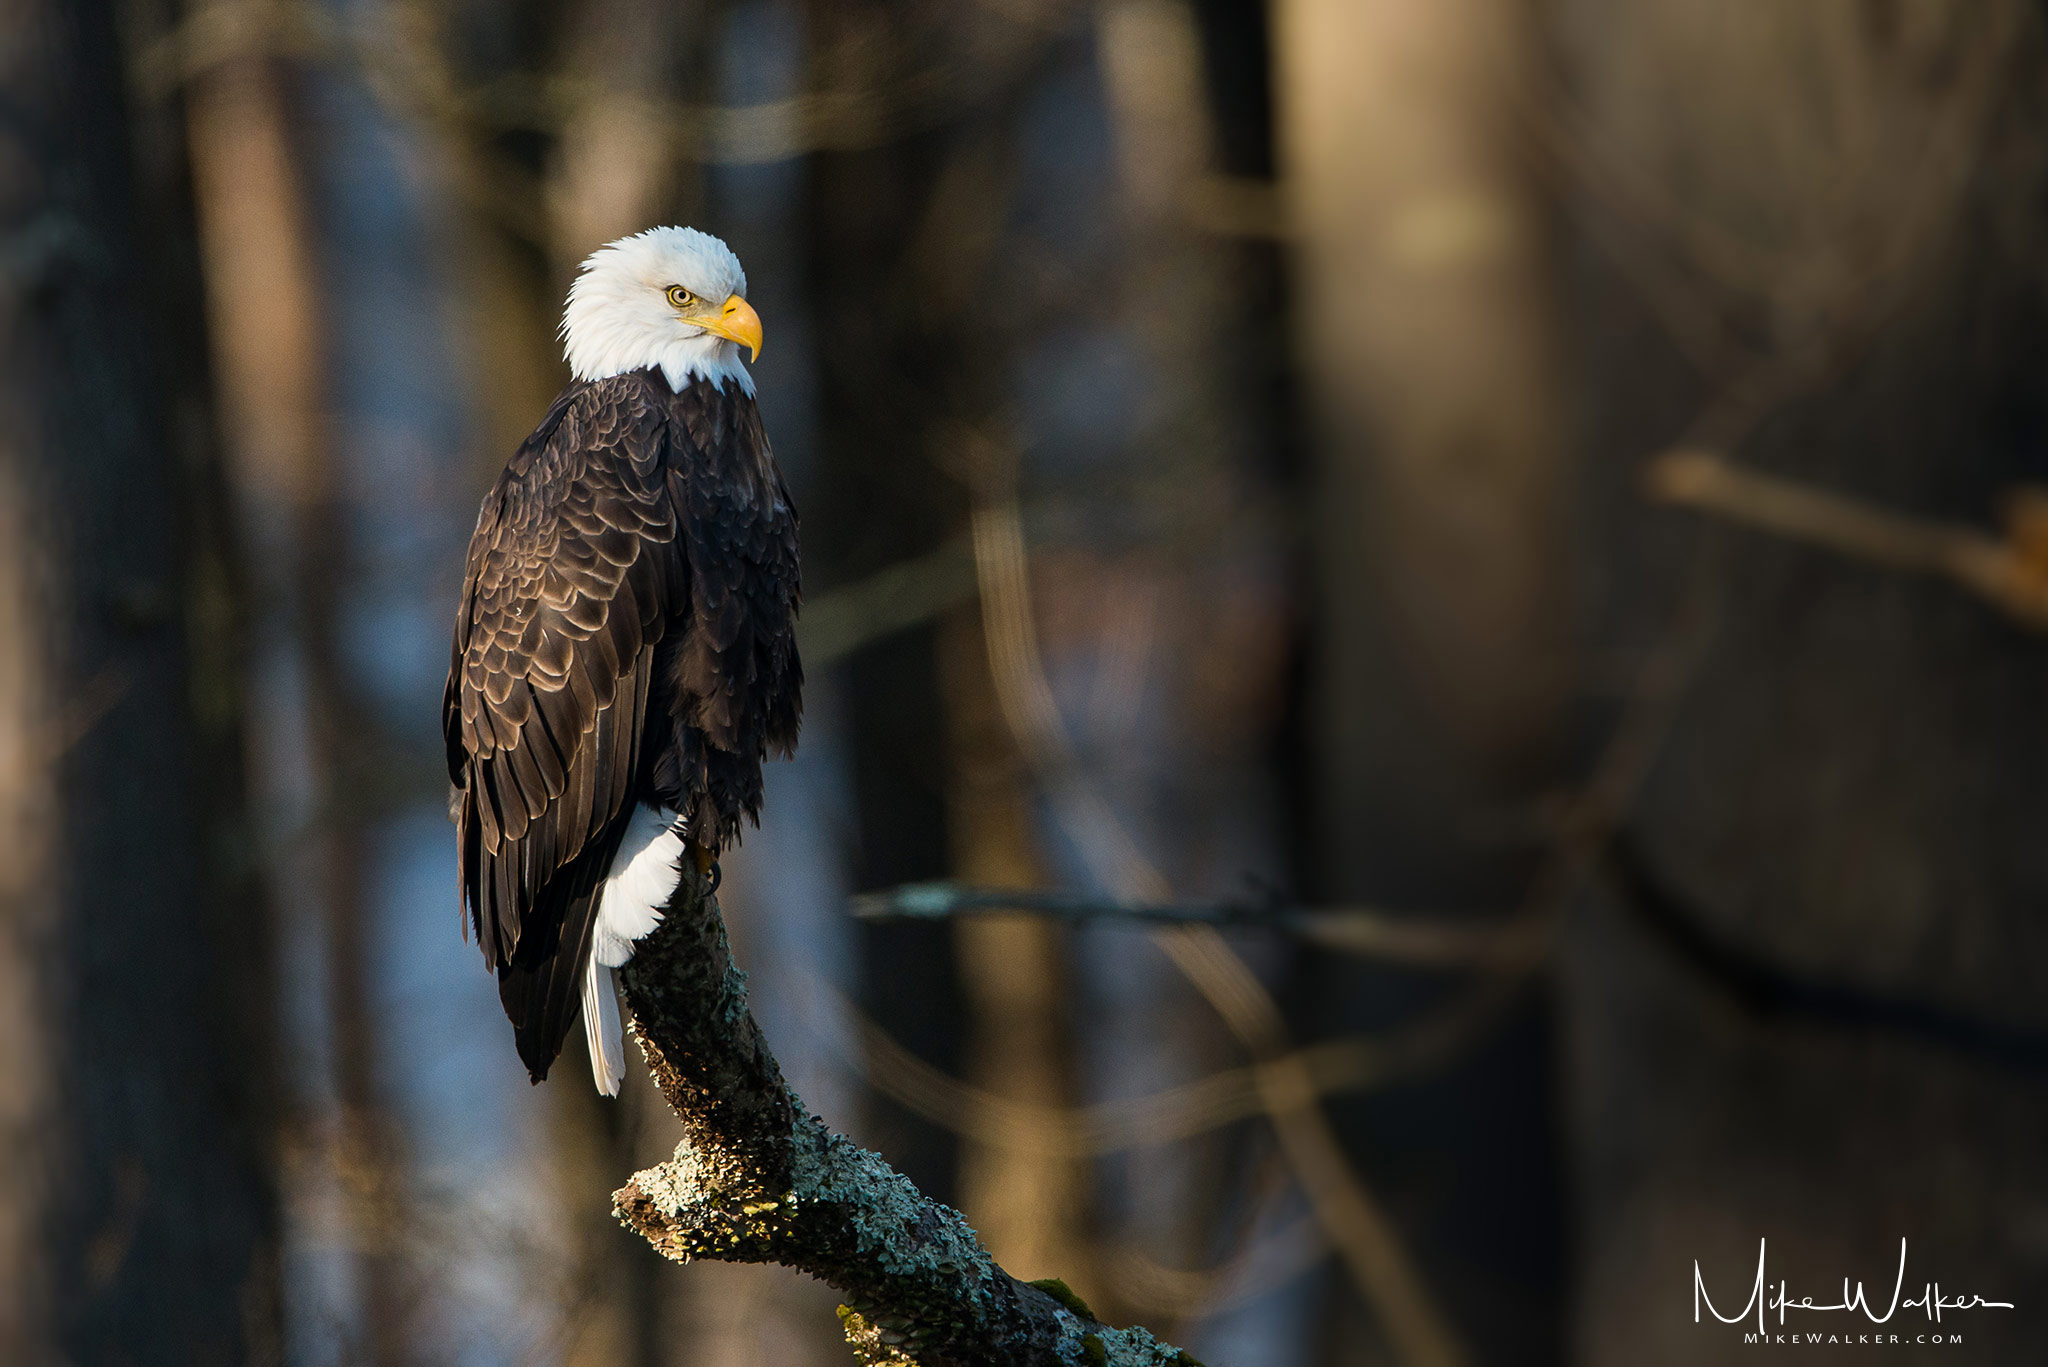 Bald eagle perched on a branch in the wild. Nature photography by Mike Walker.